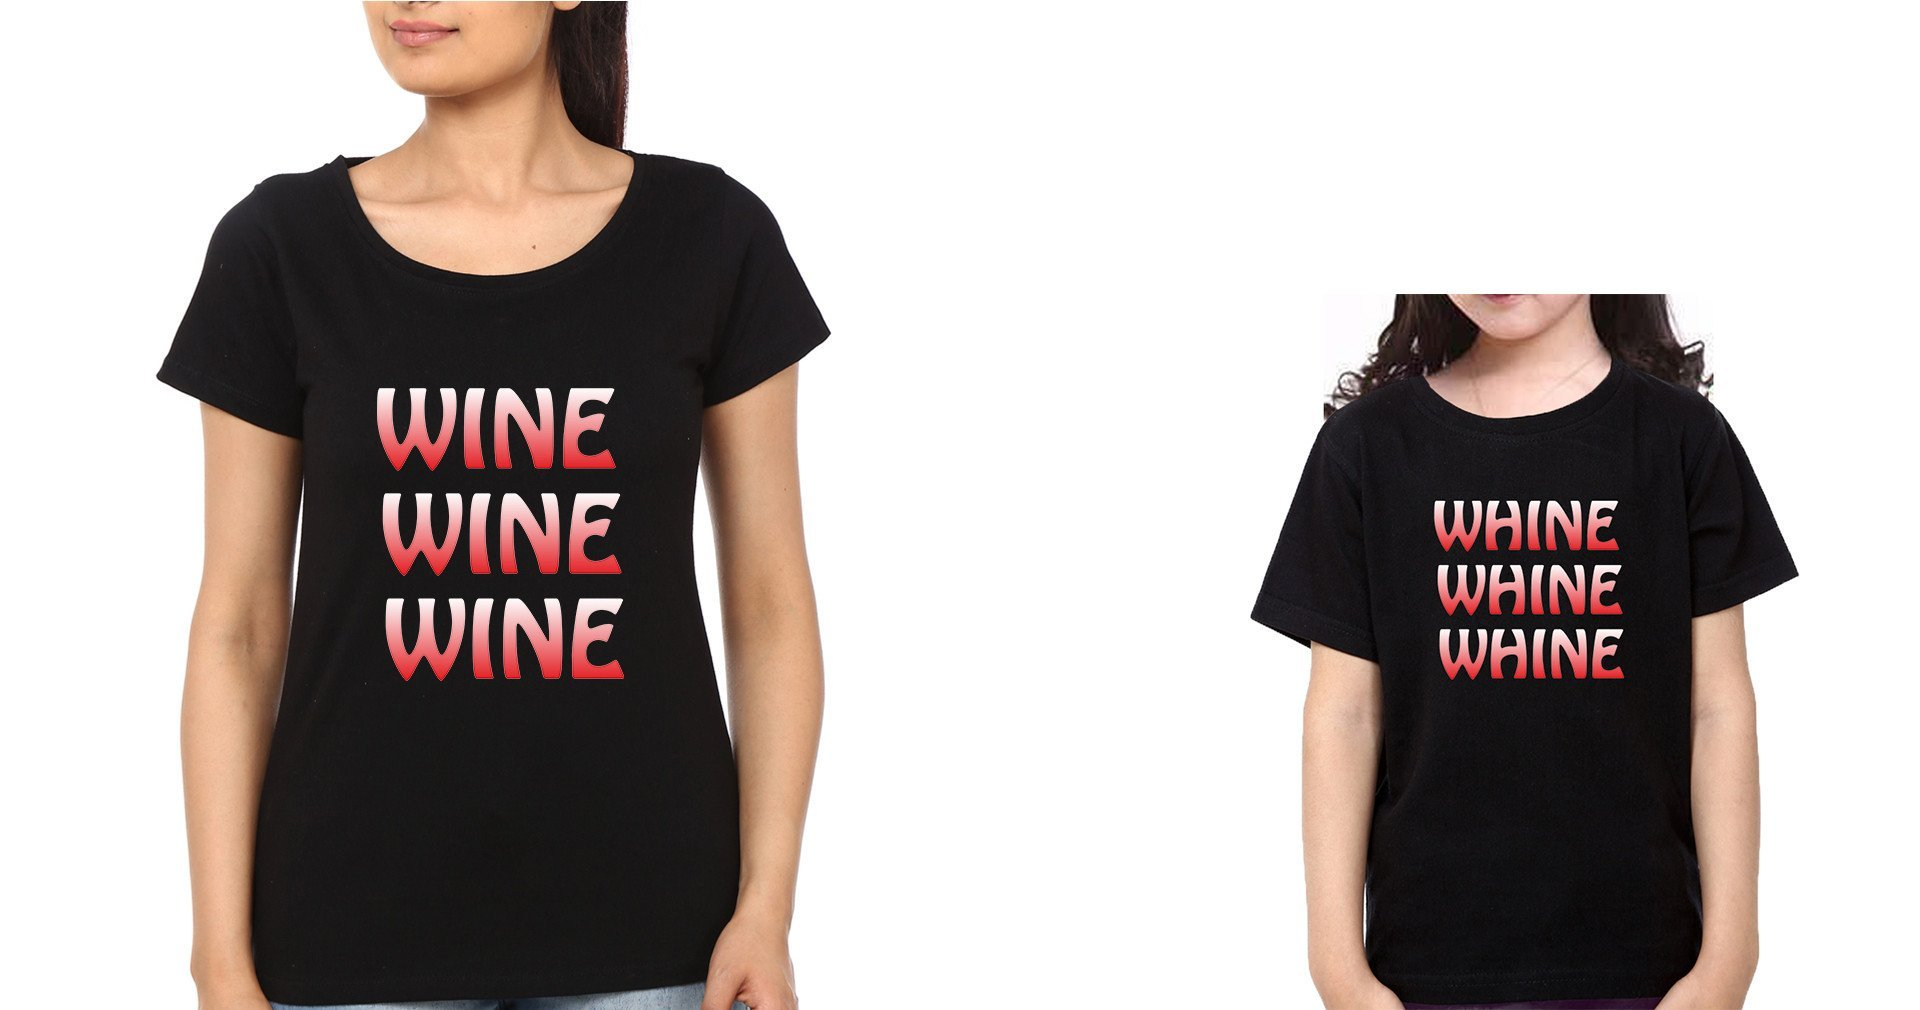 ektarfa.com Mother Daughter T-Shirts Wine Whine Mother Daughter T-Shirts